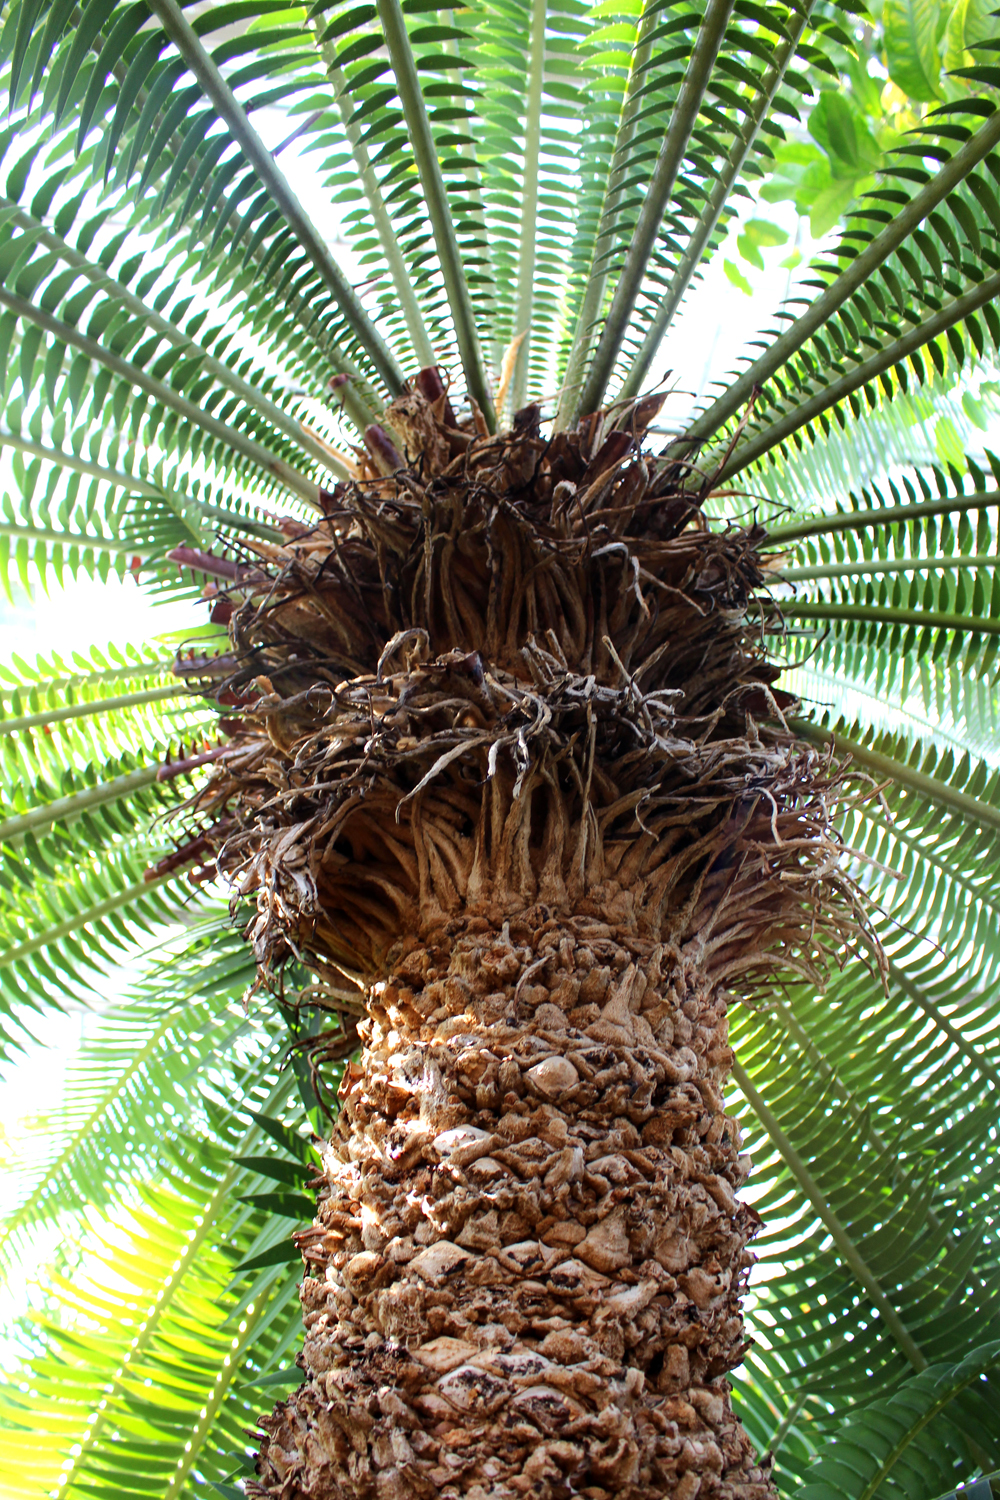 Berlin Botanical Garden palm tree - travel & lifestyle blog